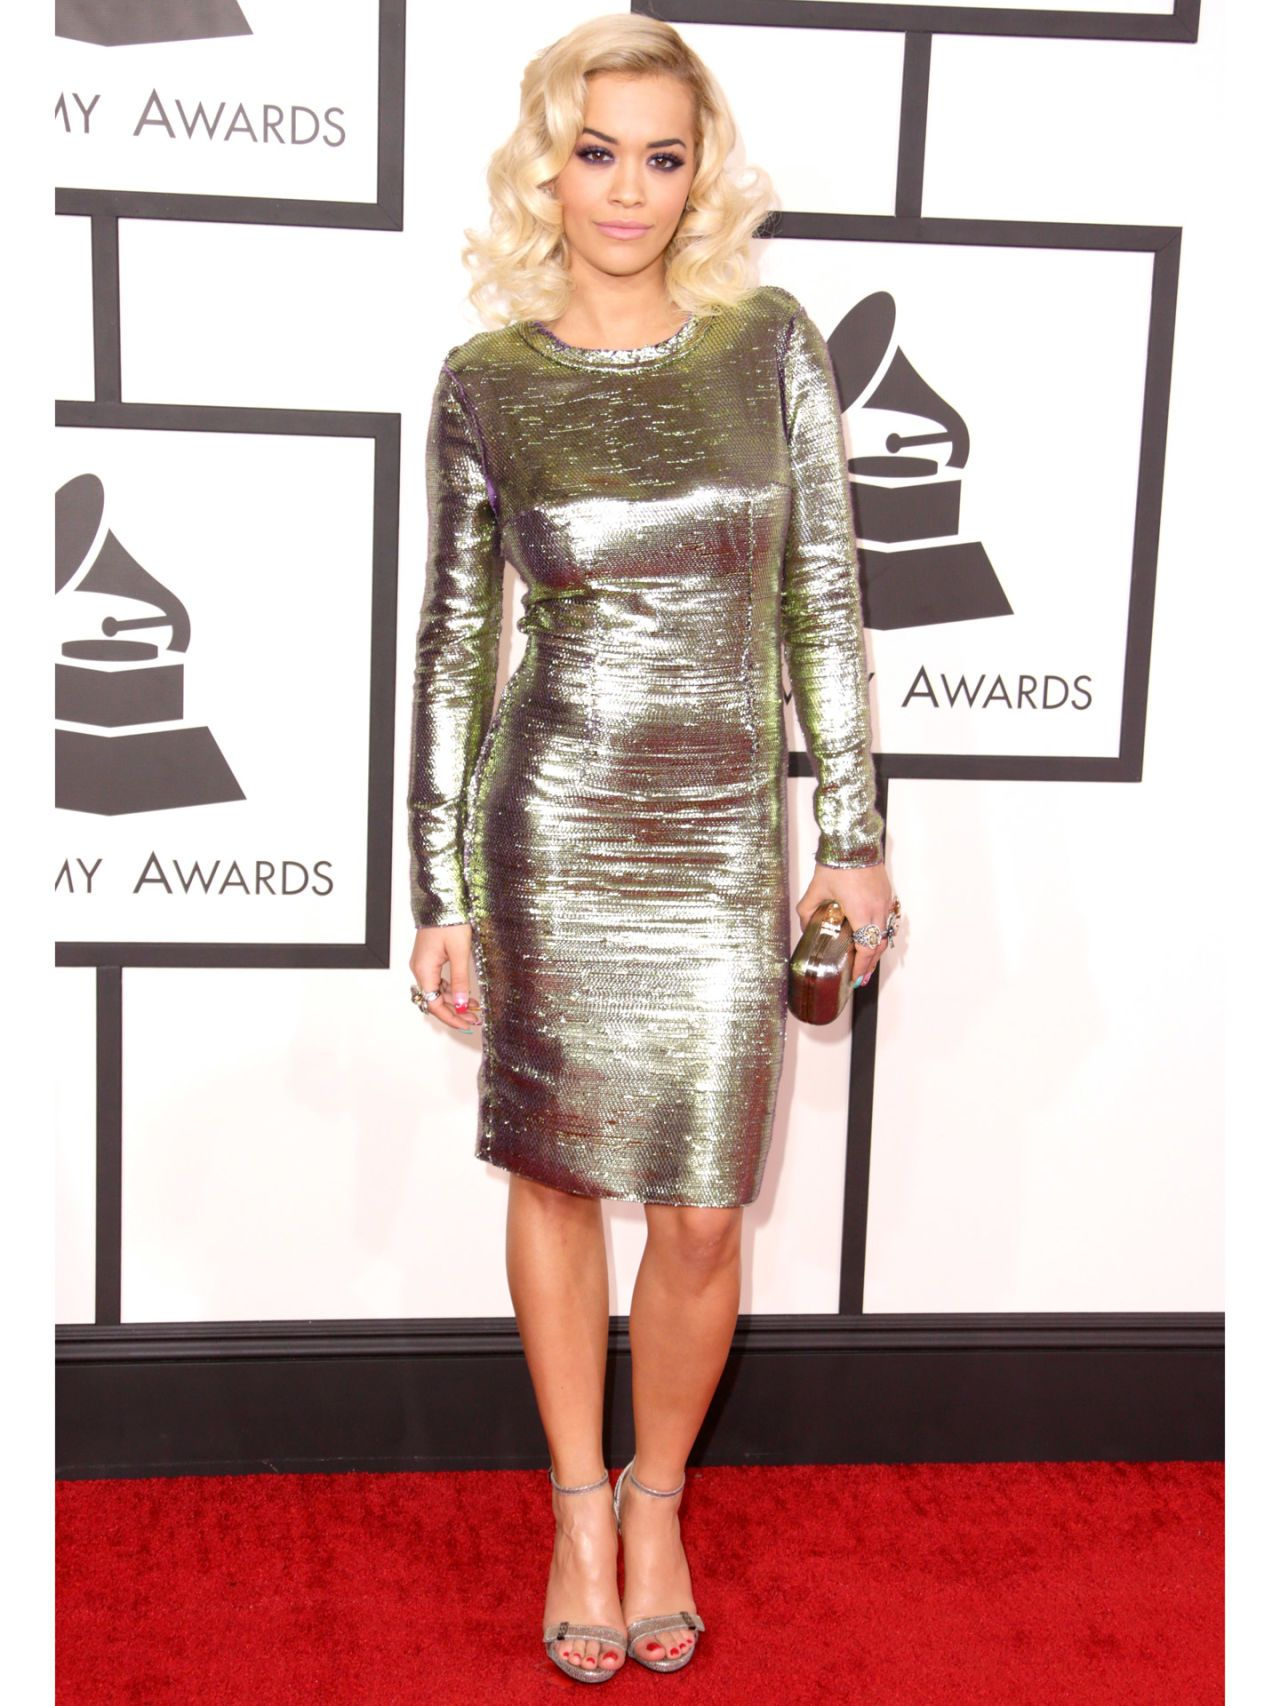 e4f7412de87 Best Dressed 2014 Grammy Awards - Celebrity Prom Dress Inspiration